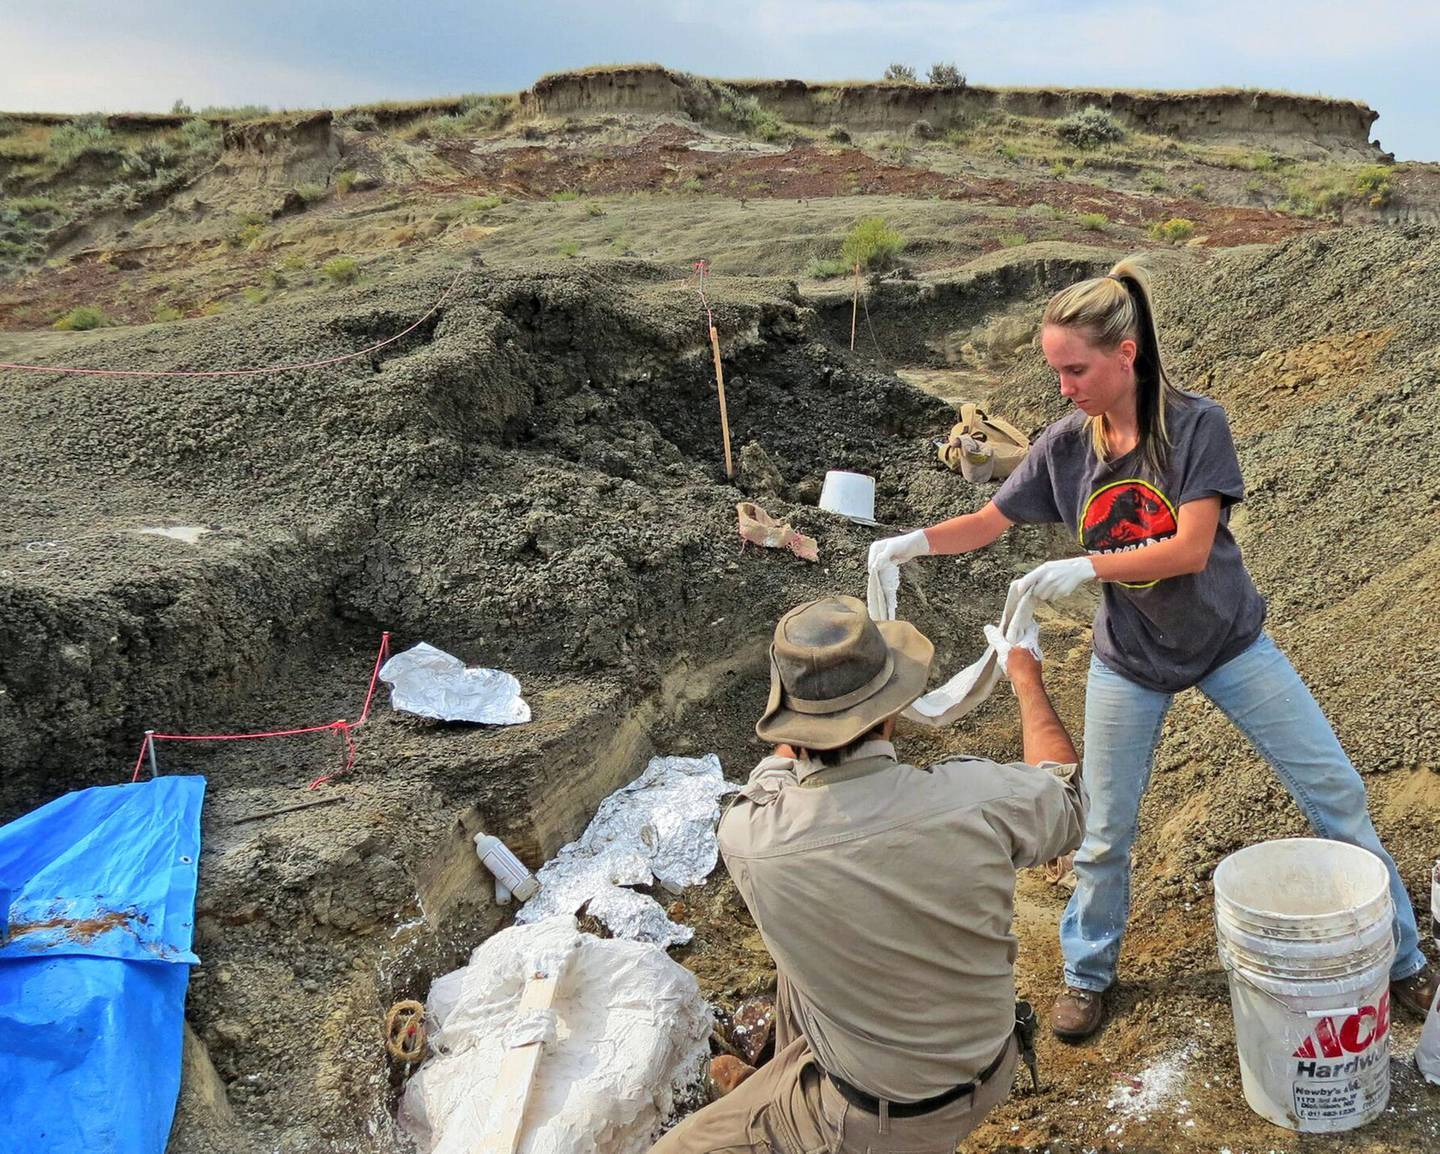 """This handout photo obtained March 30, 2019 courtesy by the University of Kansas shows Robert DePalma(L)and field assistant Kylie Ruble(R) excavate fossil carcasses from the Tanis deposit. - Scientists in the US say they have discovered the fossilized remains of a mass of creatures that died minutes after a huge asteroid slammed into the Earth 66 million years ago, sealing the fate of the dinosaurs. In a paper to be published April 1, 2019, a team of Kansas University paleontologists say they found a """"mother lode of exquisitely preserved animal and fish fossils"""" in what is now North Dakota. The asteroid's impact in what is now Mexico was the most cataclysmic event ever known to befall Earth, eradicating 75 percent of the planet's animal and plant species, extinguishing the dinosaurs and paving the way for the rise of humans. (Photo by Robert DePalma / Kansas University / AFP) / XGTY / RESTRICTED TO EDITORIAL USE - MANDATORY CREDIT """"AFP PHOTO / University of Kansas"""" - NO MARKETING NO ADVERTISING CAMPAIGNS - DISTRIBUTED AS A SERVICE TO CLIENTS --- TO GO WITH AFP STORY """"Fossil 'mother lode' records Earth-shaking asteroid's impact: study. """""""